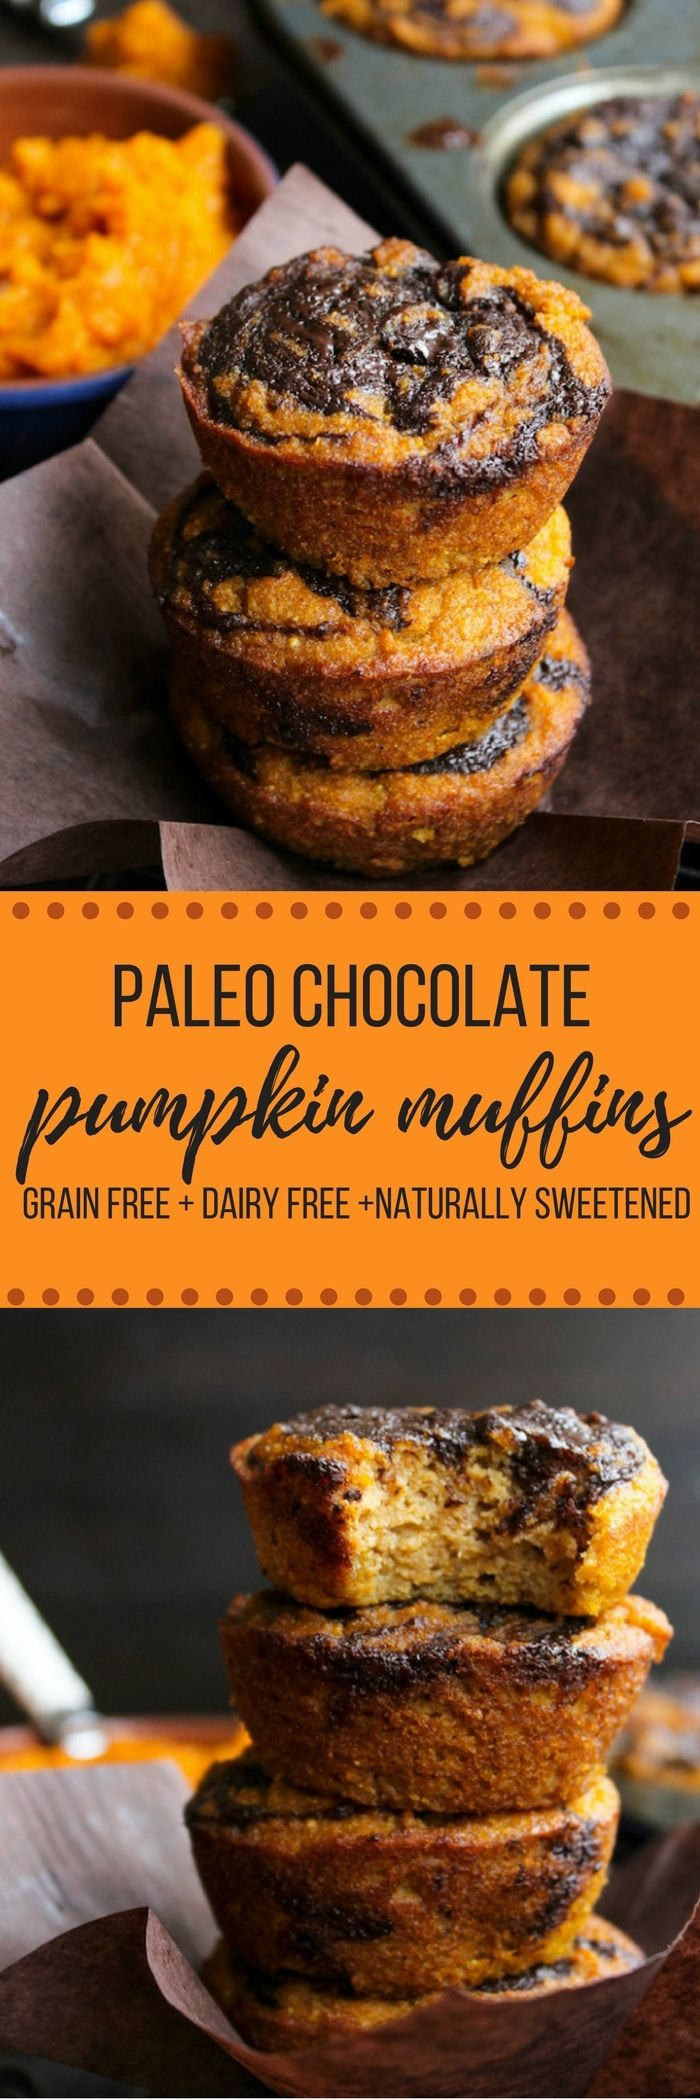 Paleo Pumpkin Muffins with a Chocolate Swirl Top - a simple, one bowl recipe perfect for the perfect fall treat   gluten free + grain free + dairy free